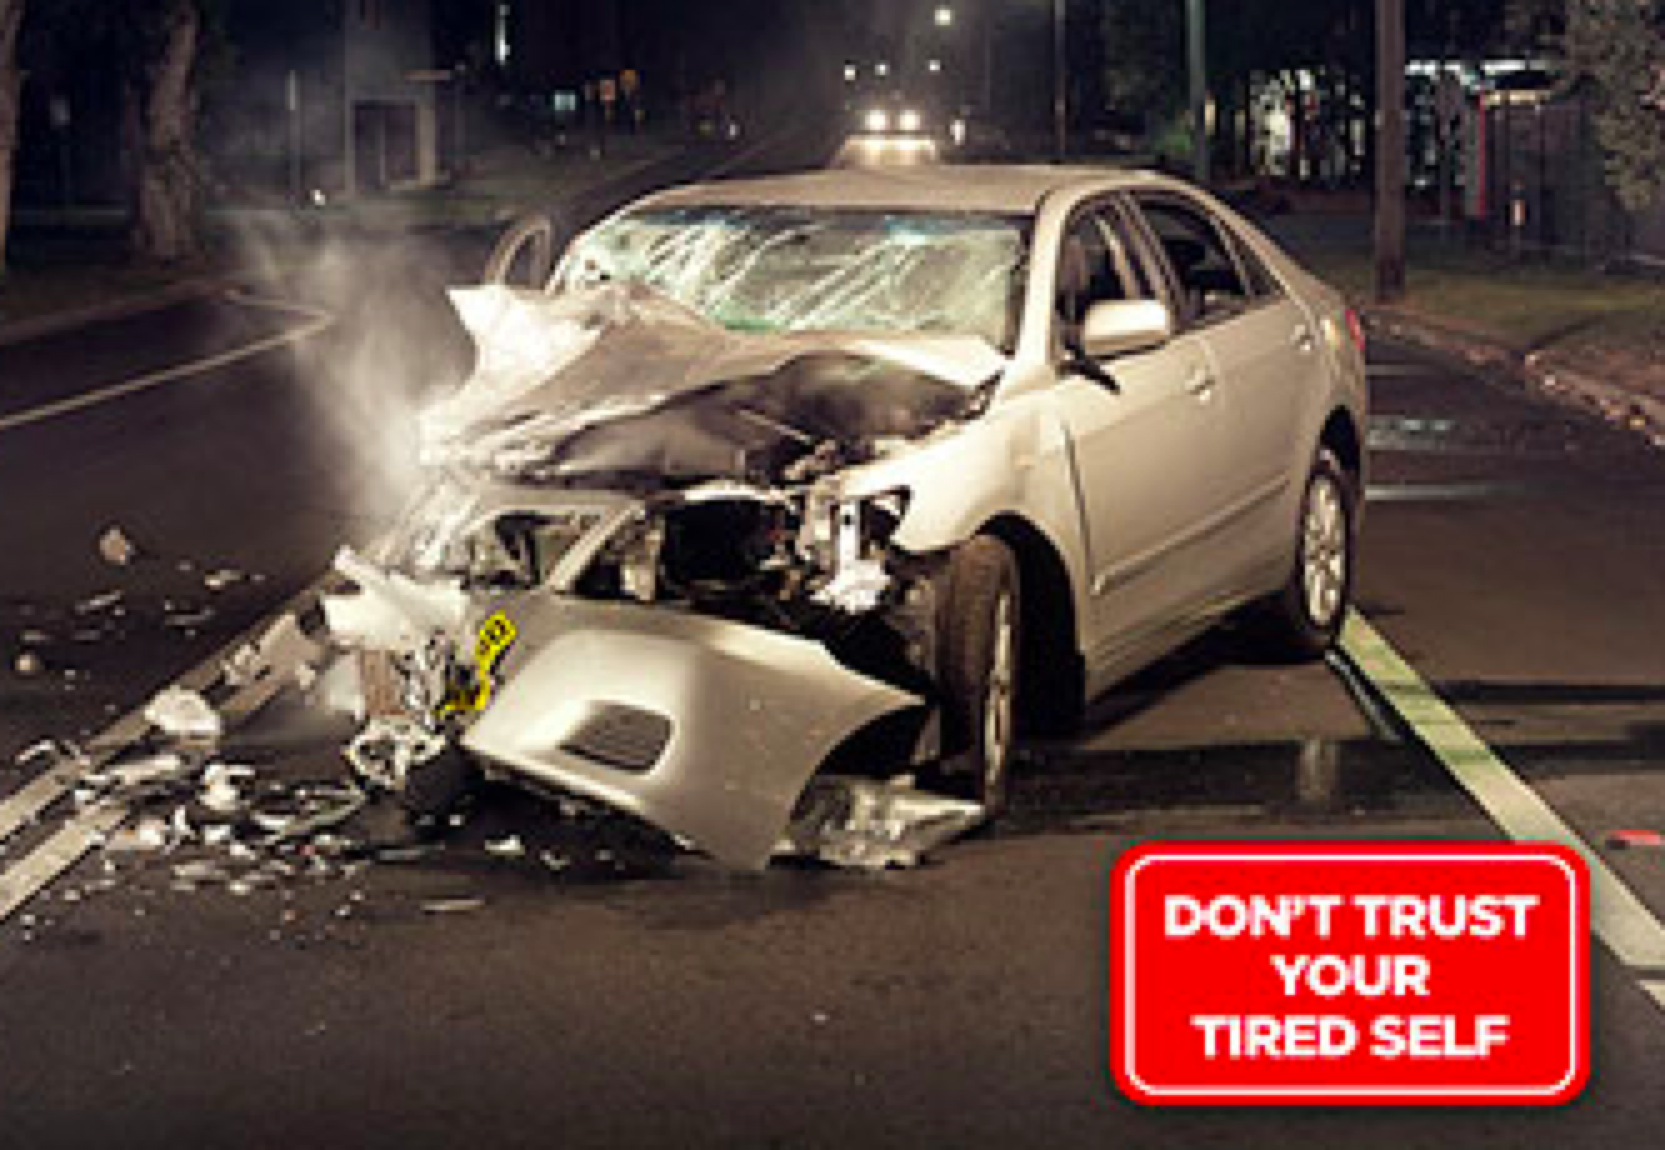 Picture from roadsafety.transport.nsw.gov.au